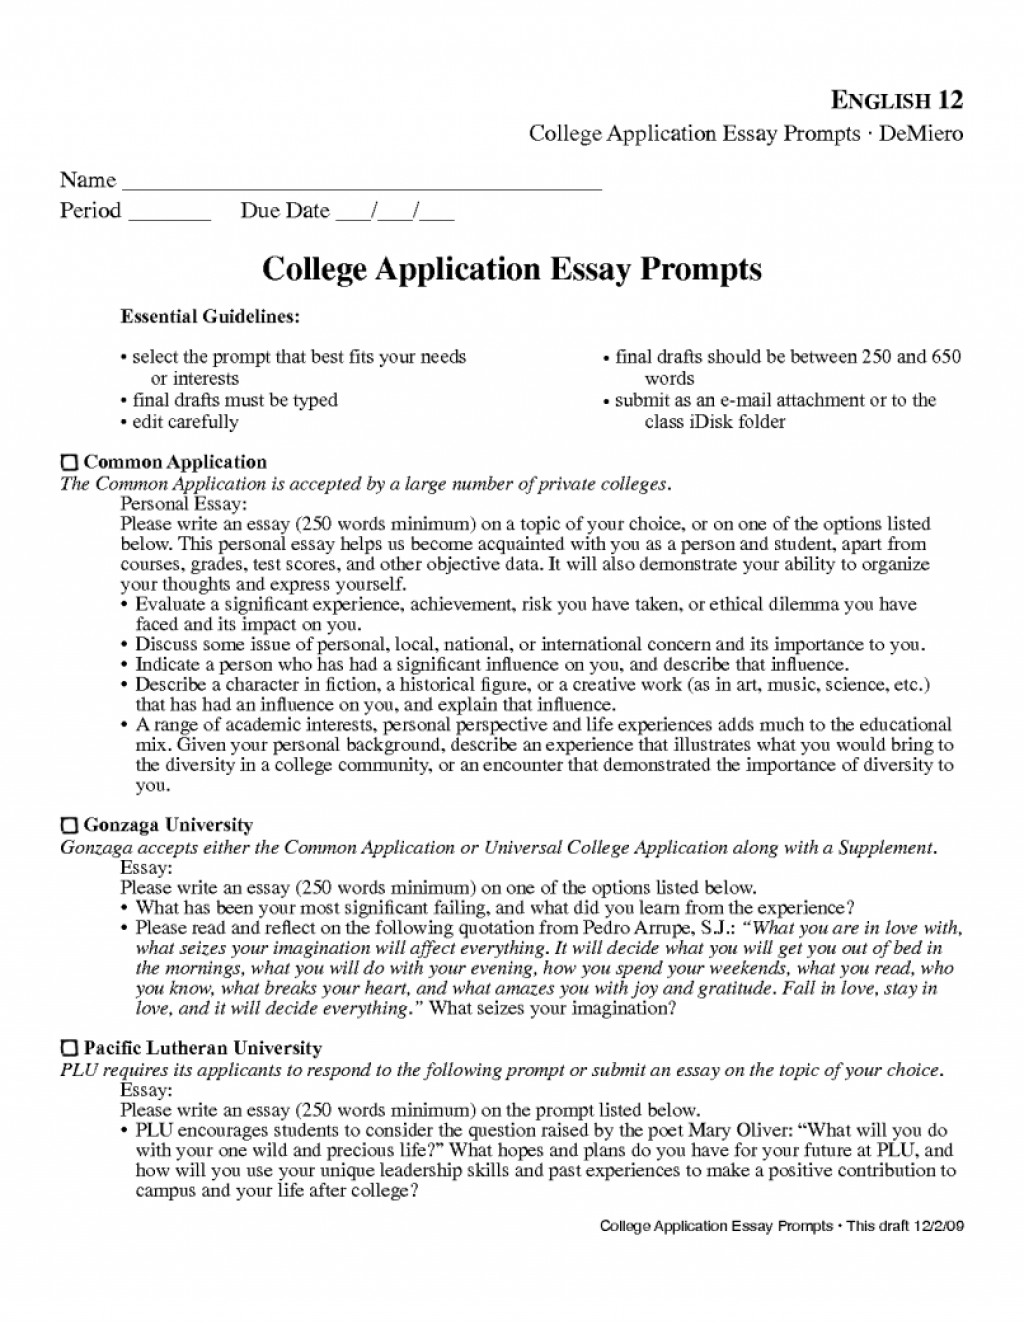 005 Common App Essay Example The Prompts Poemdoc Or Best College Using Quotes In Essays Quotesgram Admission L Ucf Prompt Boston Uc Harvard Texas Mit Astounding 2017 18 2017-18 Questions 17-18 Large